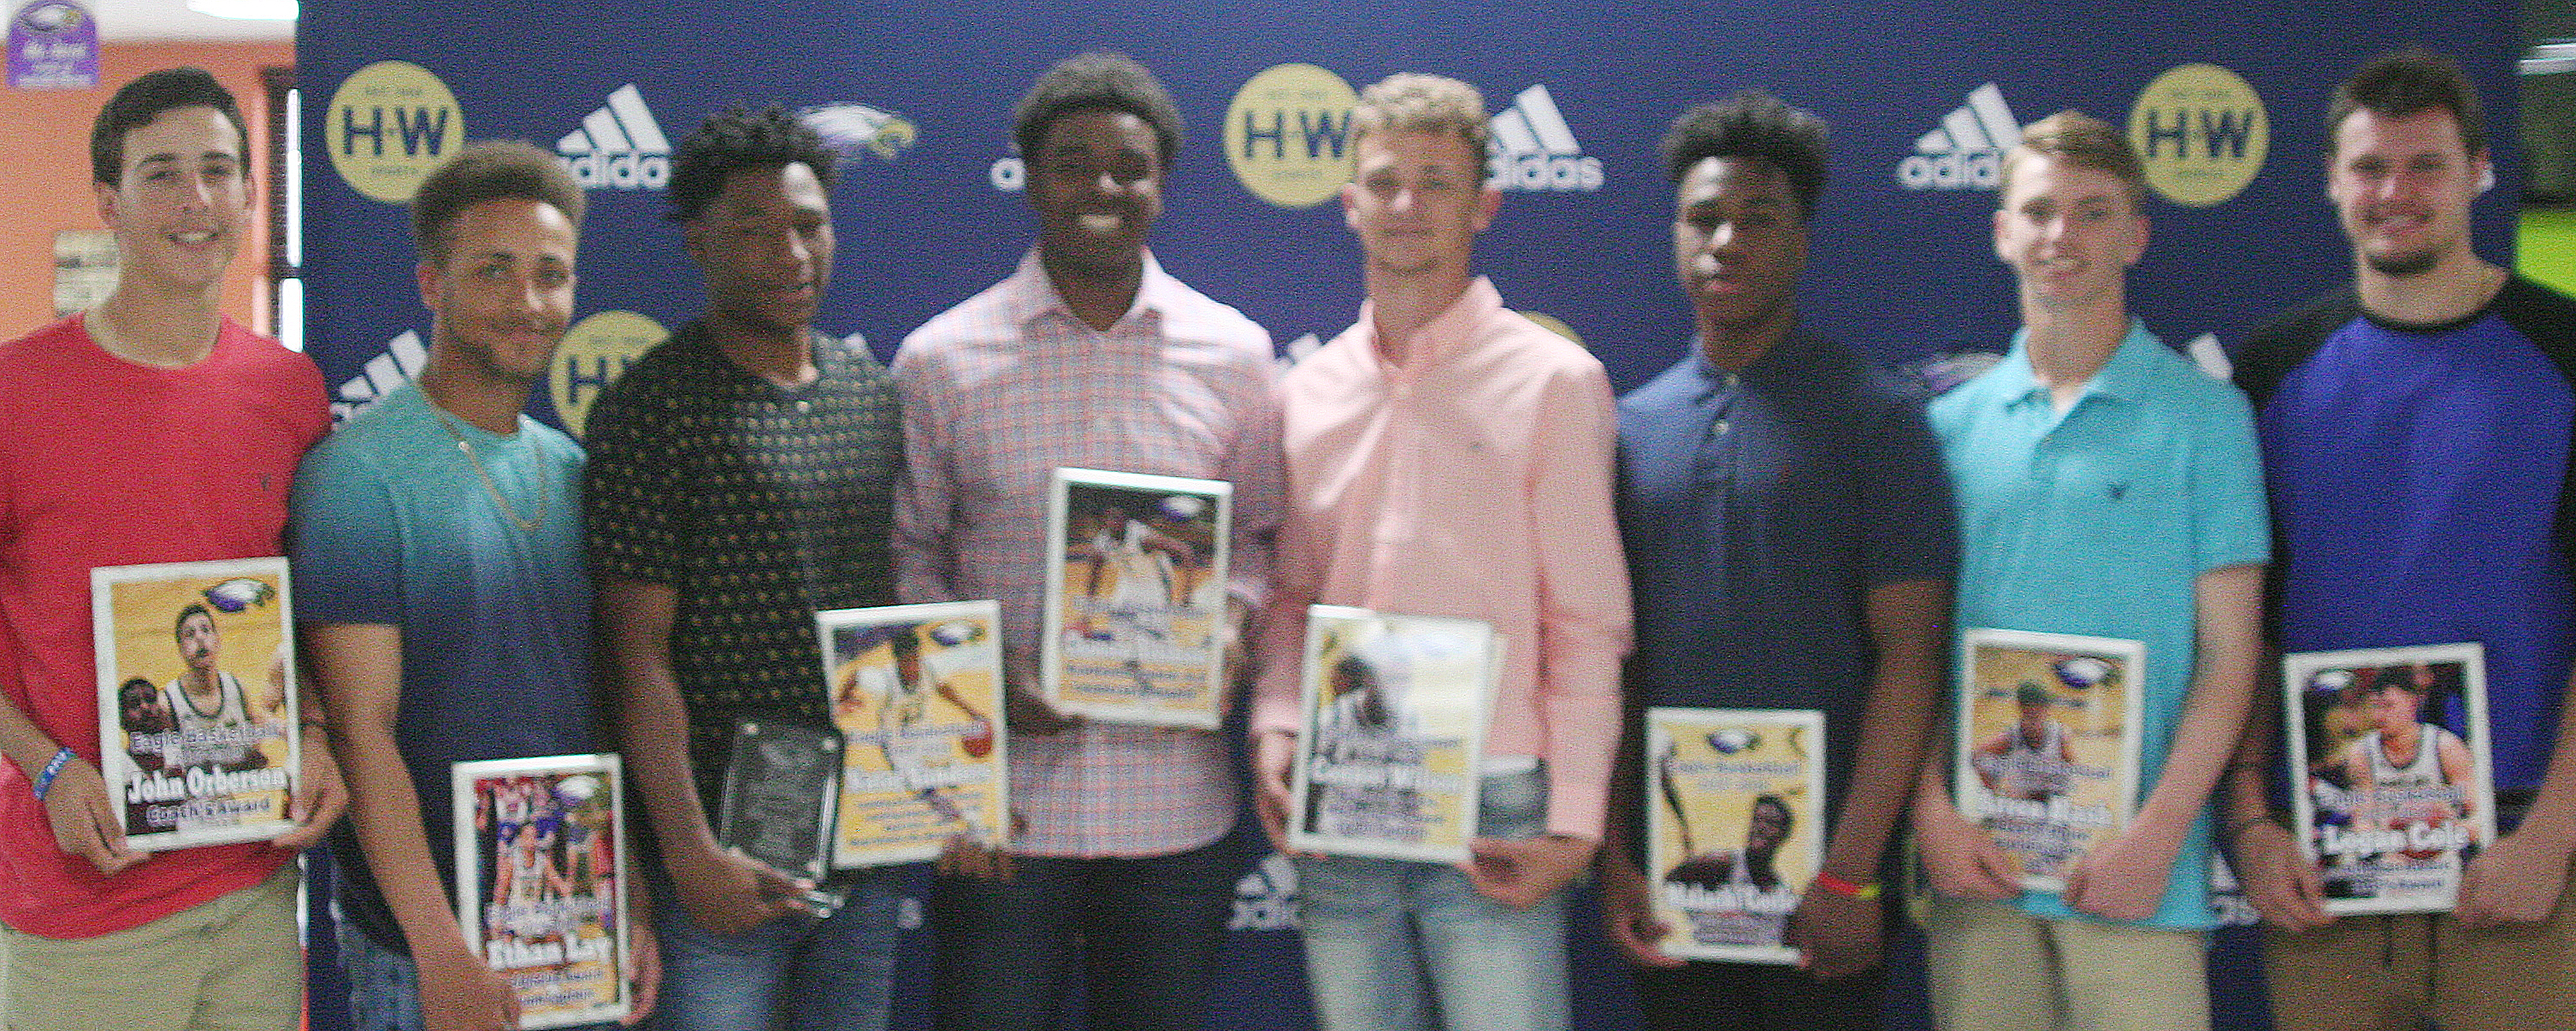 Receiving varsity awards are, from left, freshman John Orberson, senior Ethan Lay, junior Taj Sanders, seniors Chanson Atkinson and Connor Wilson, sophomore Malachi Corley, freshman Arren Hash and senior Logan Cole.